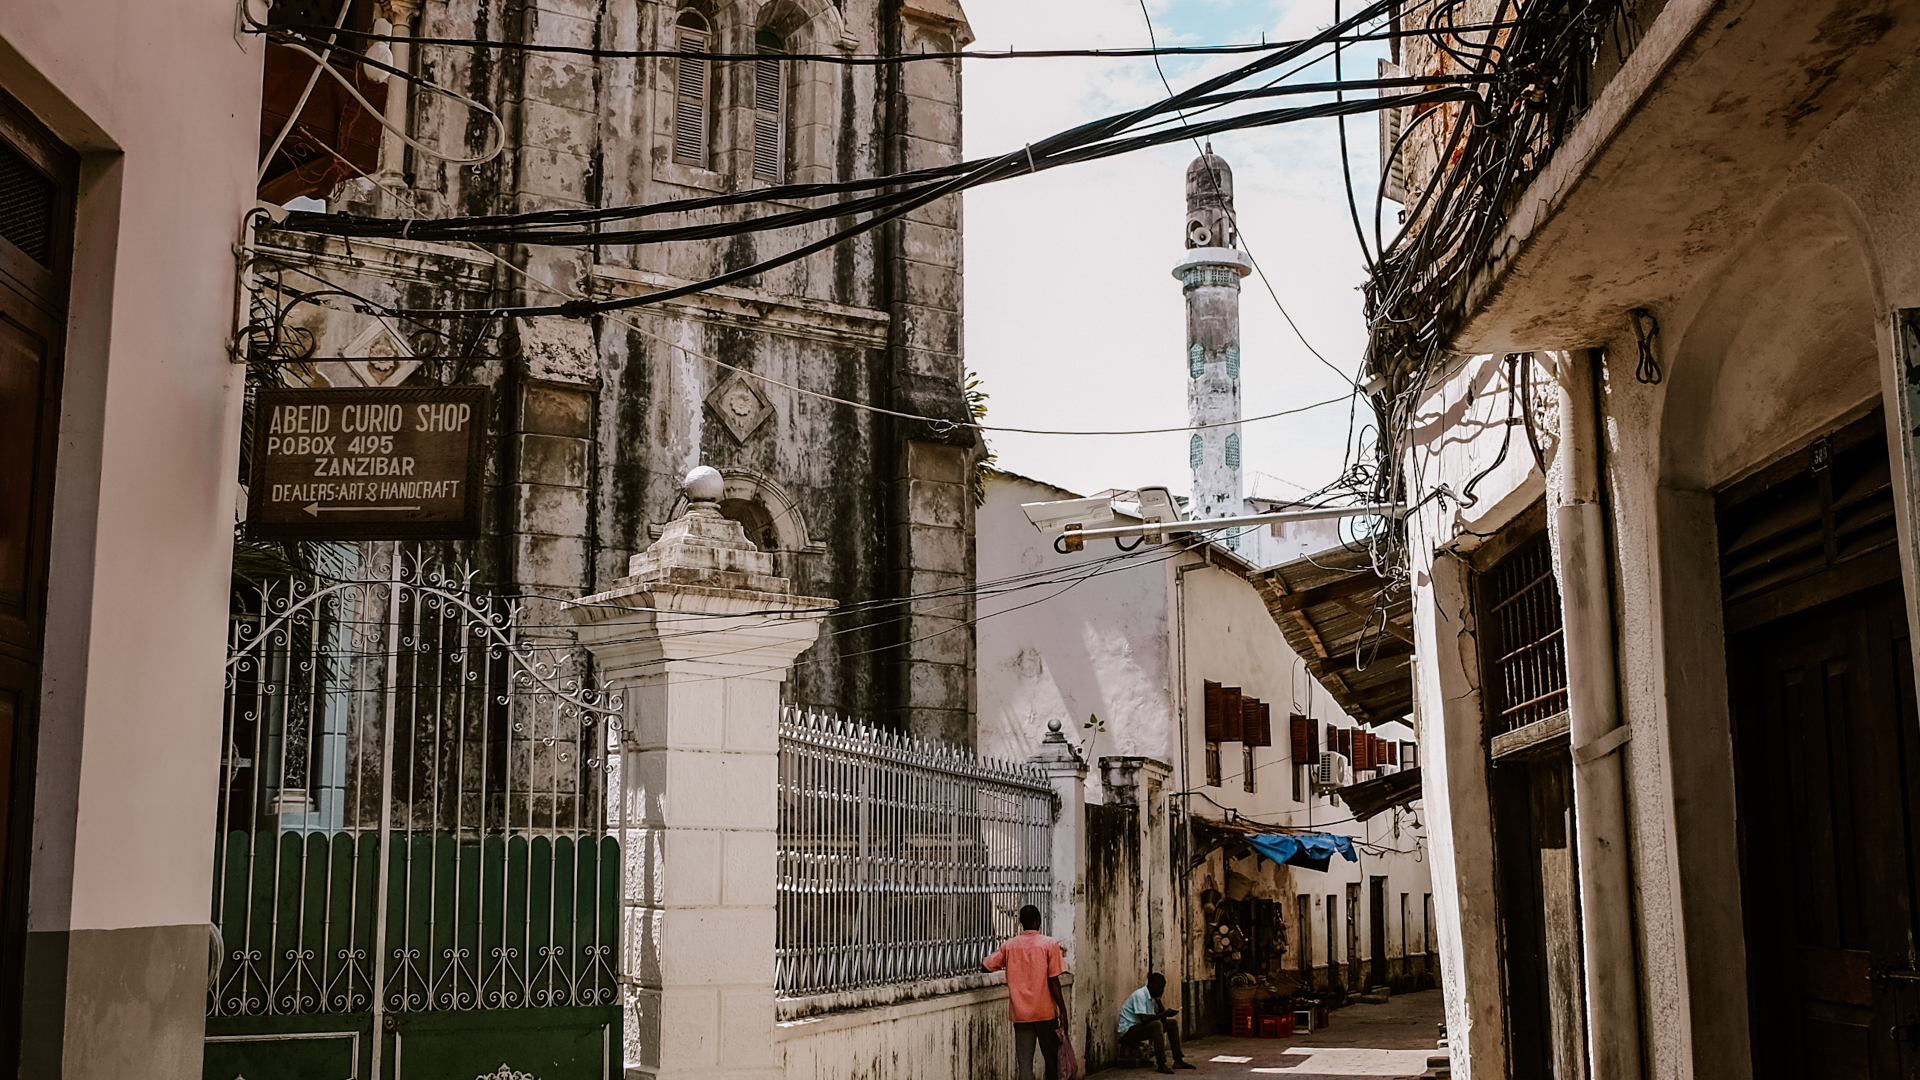 An alley next to Saint Joseph's Cathedral with the Istiqama mosque minaret in the background in Stone Town in Zanzibar, Tanzania